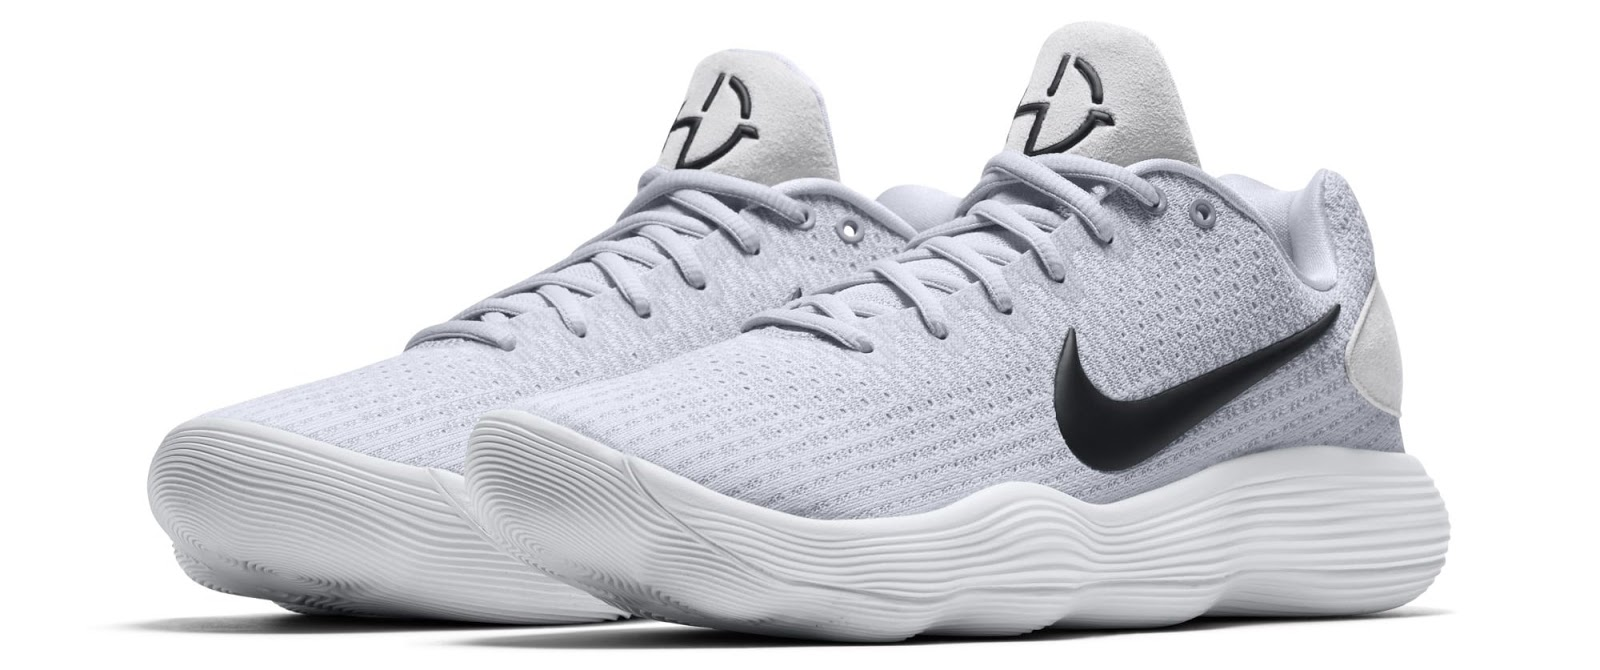 wholesale dealer da55d 187d3 Nike Hyperdunk 2017 Low  Analykix